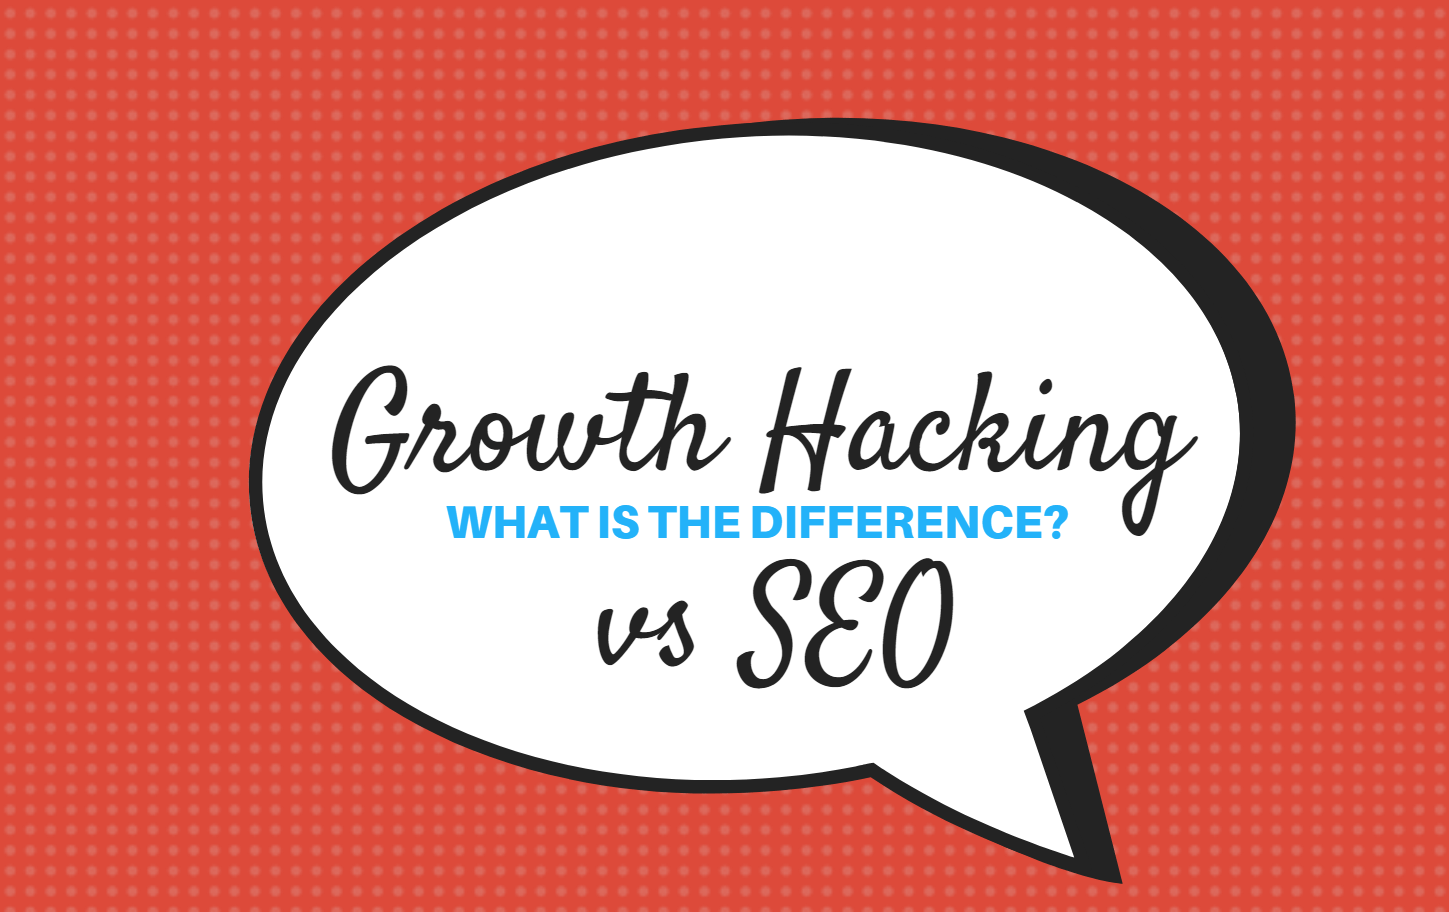 Growth Hacking Vs Seo